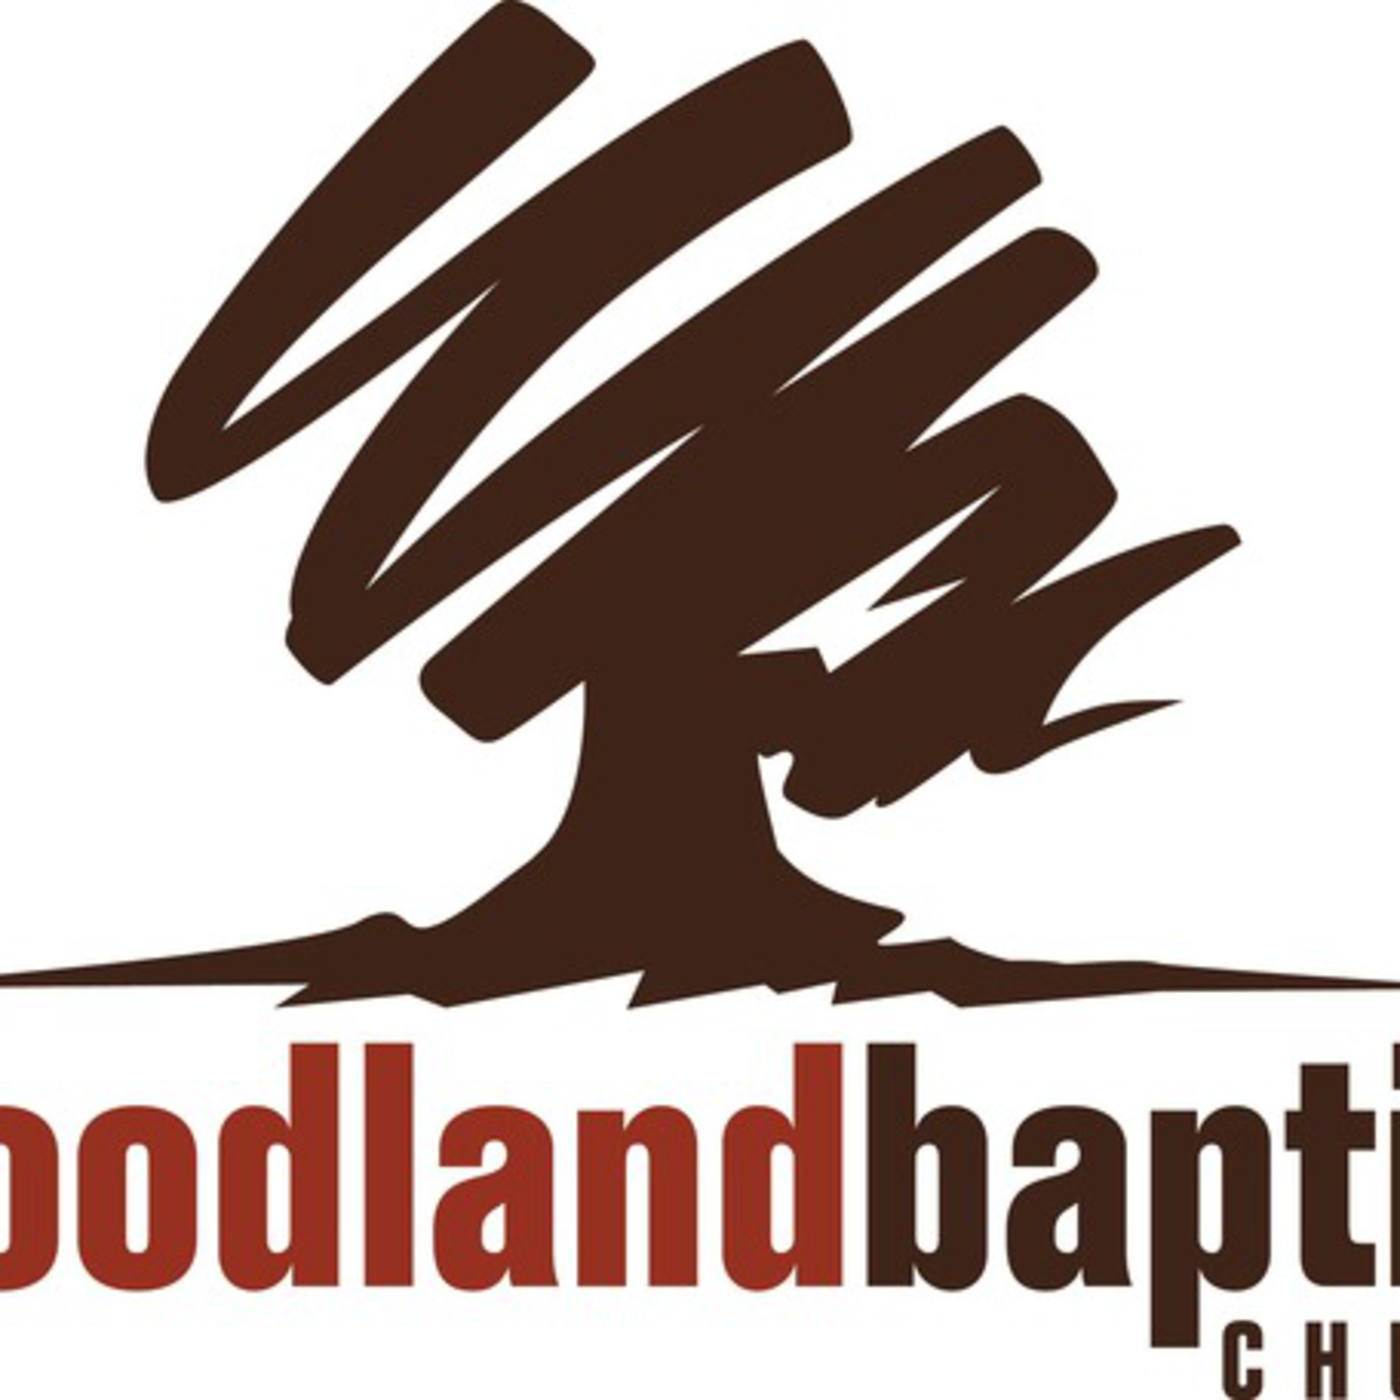 Woodland Baptist Church's Podcast